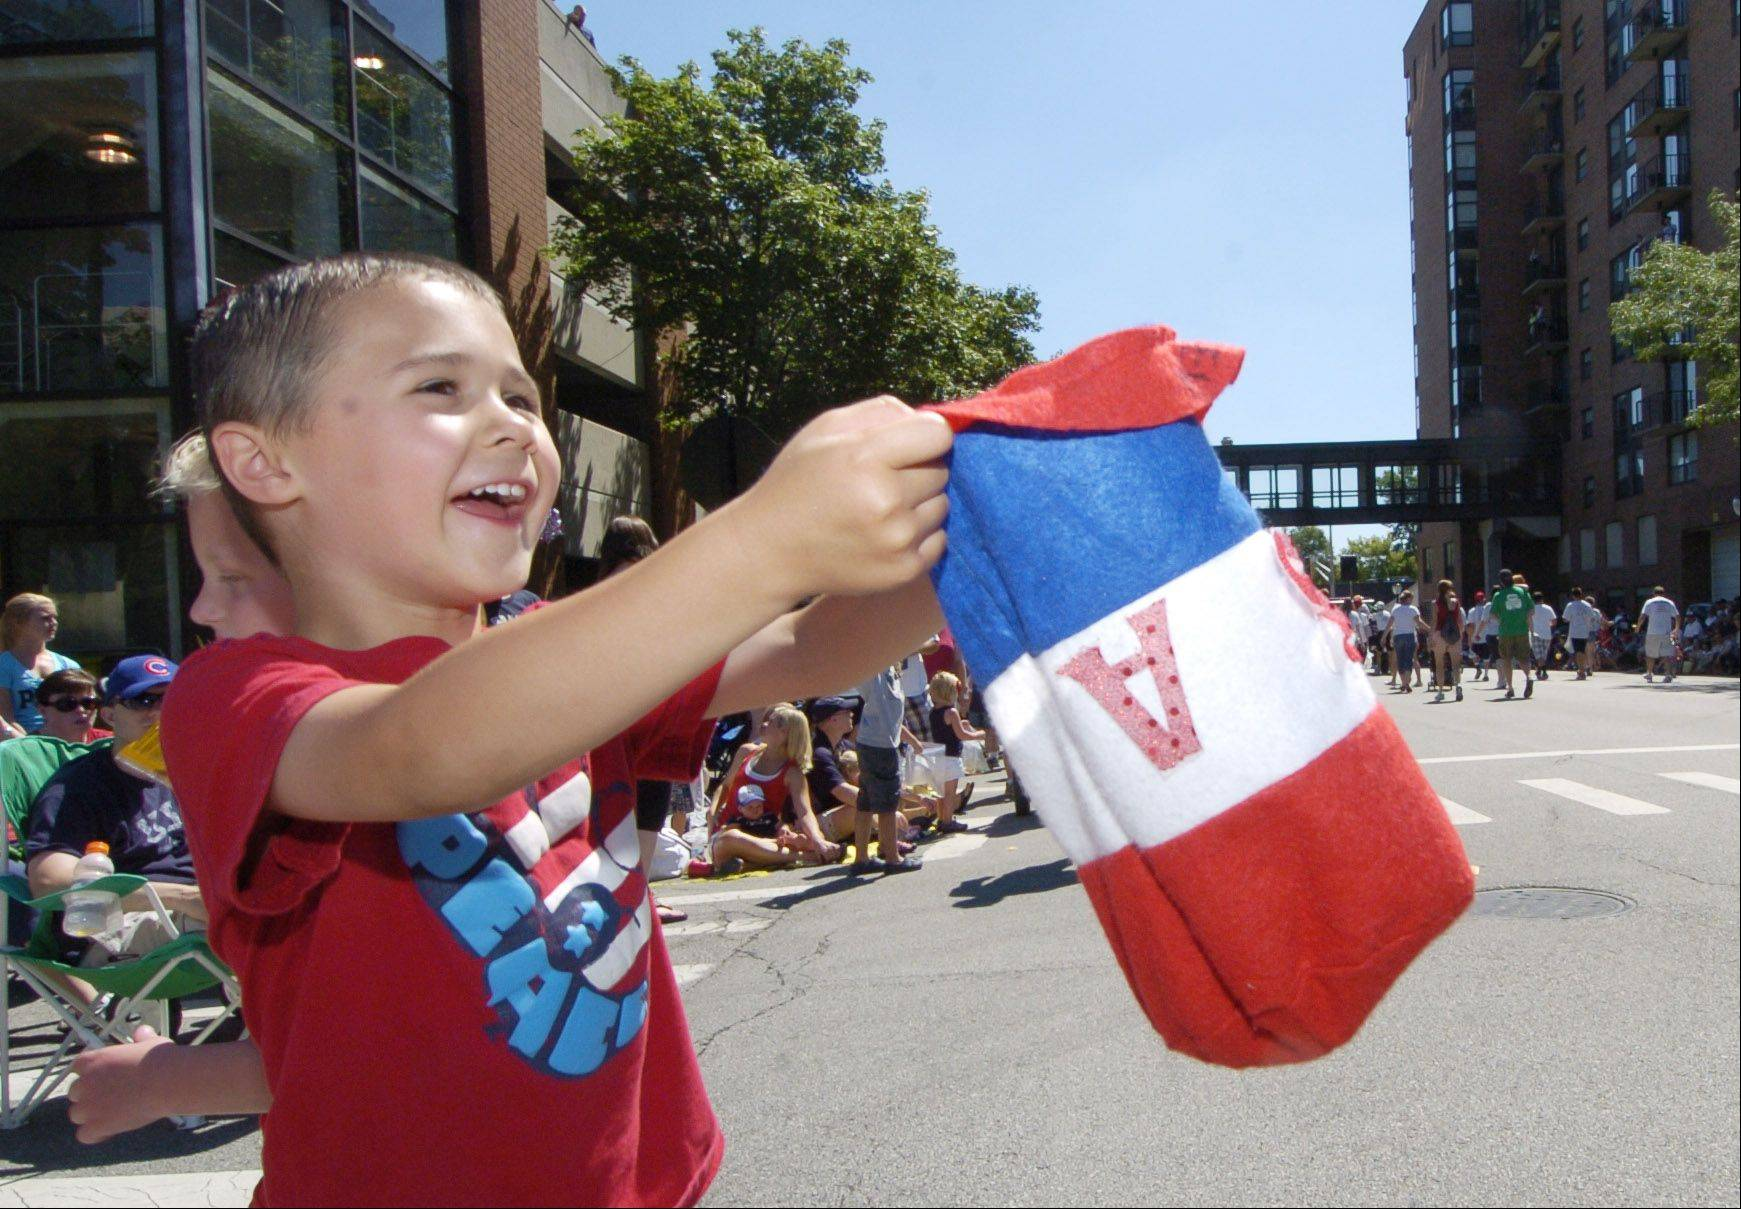 Drew Phillips, 5, of Arlington Heights catches candy in his Uncle Sam hat during the Arlington Heights Fourth of July parade Monday.